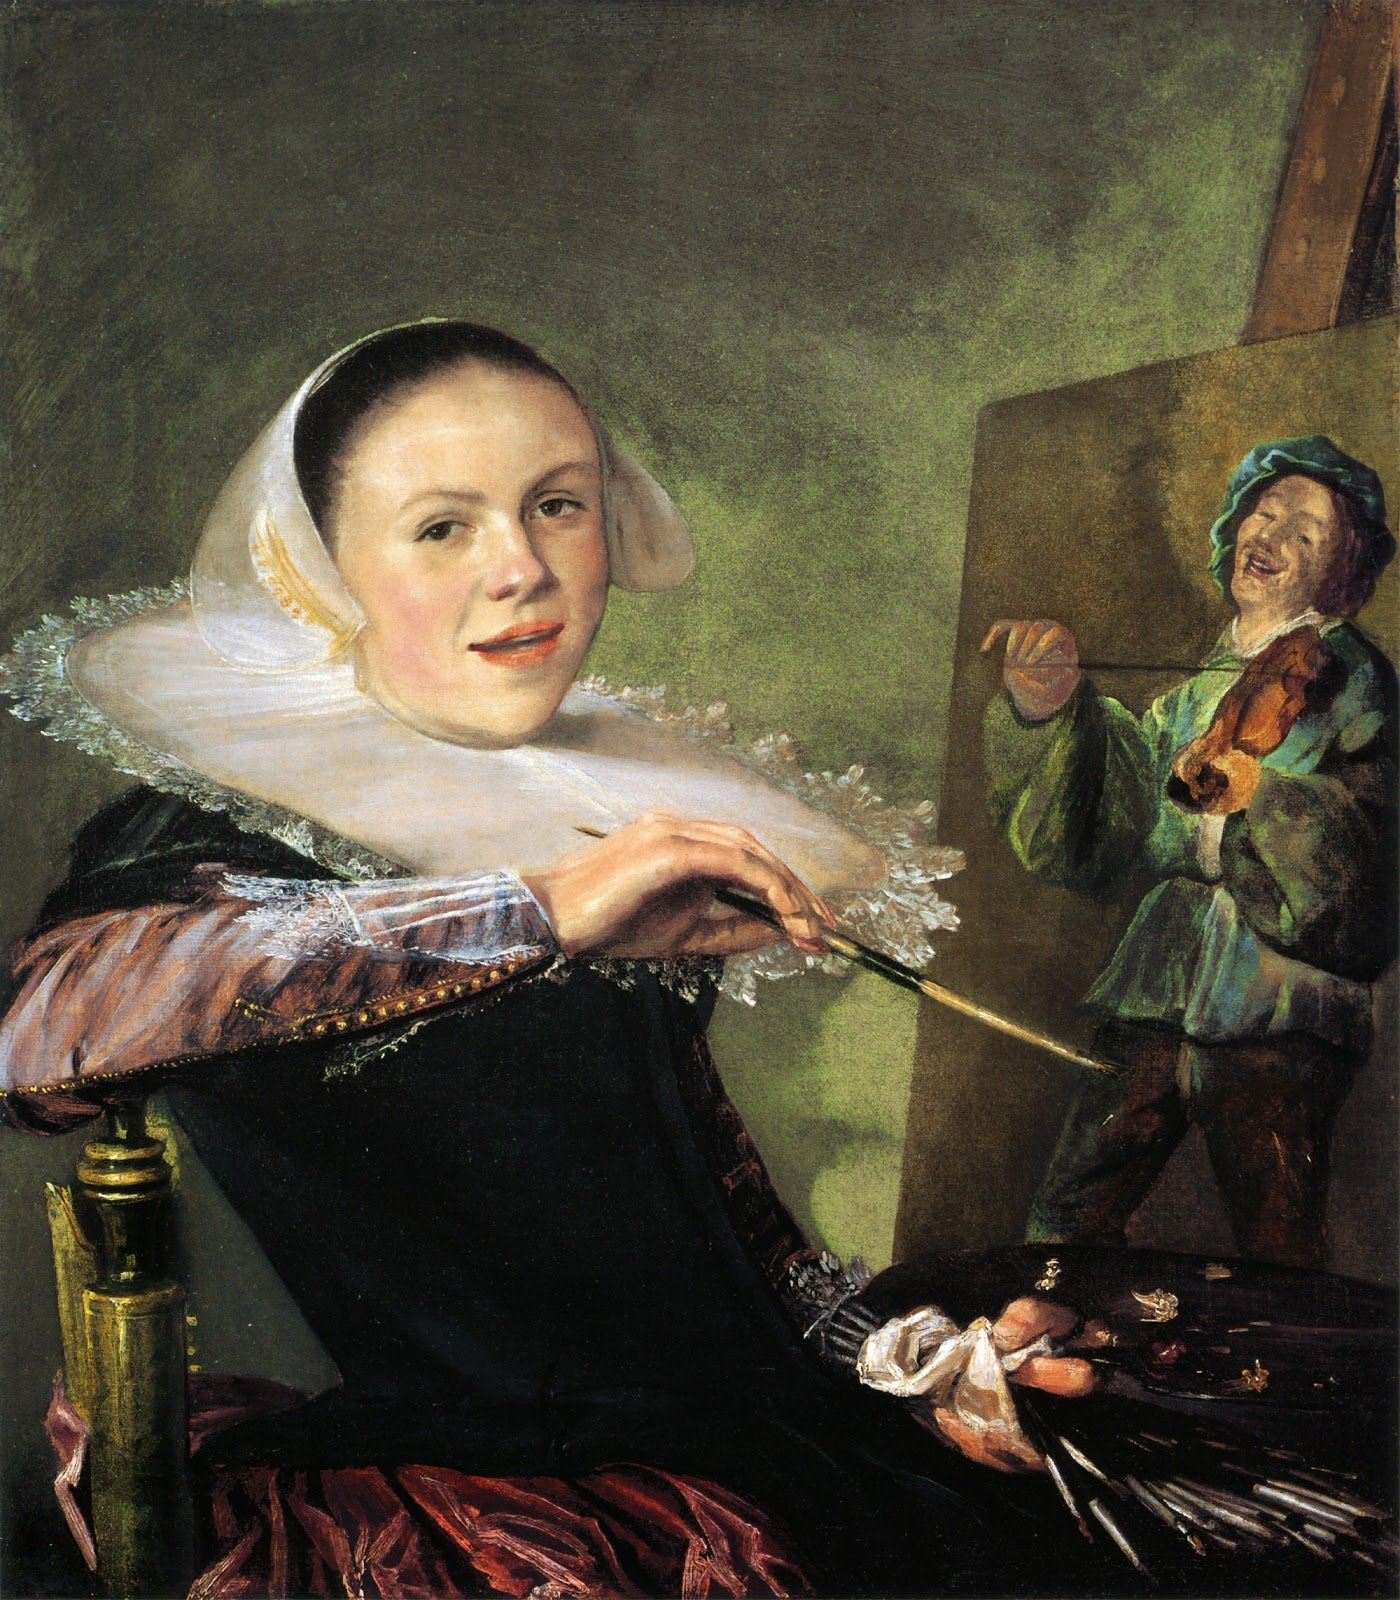 Judith leyster 1609 1660 is the most famous female painter of the dutch golden age